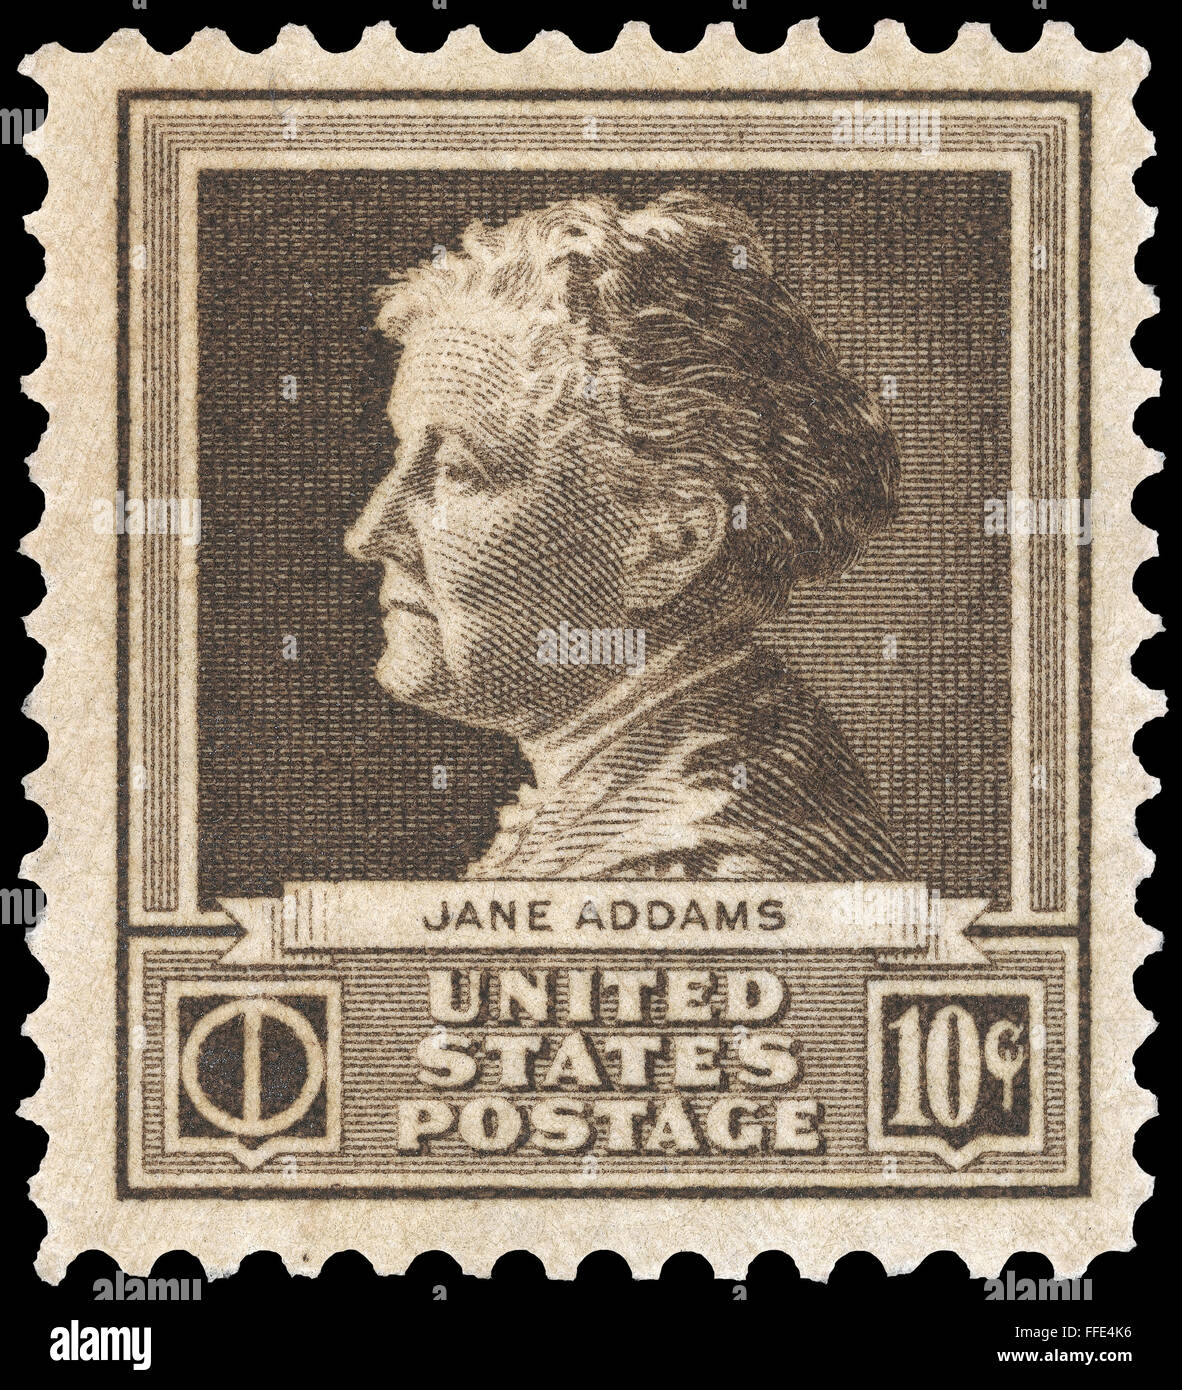 jane addams (1860-1935). /namerican social worker and cofounder of